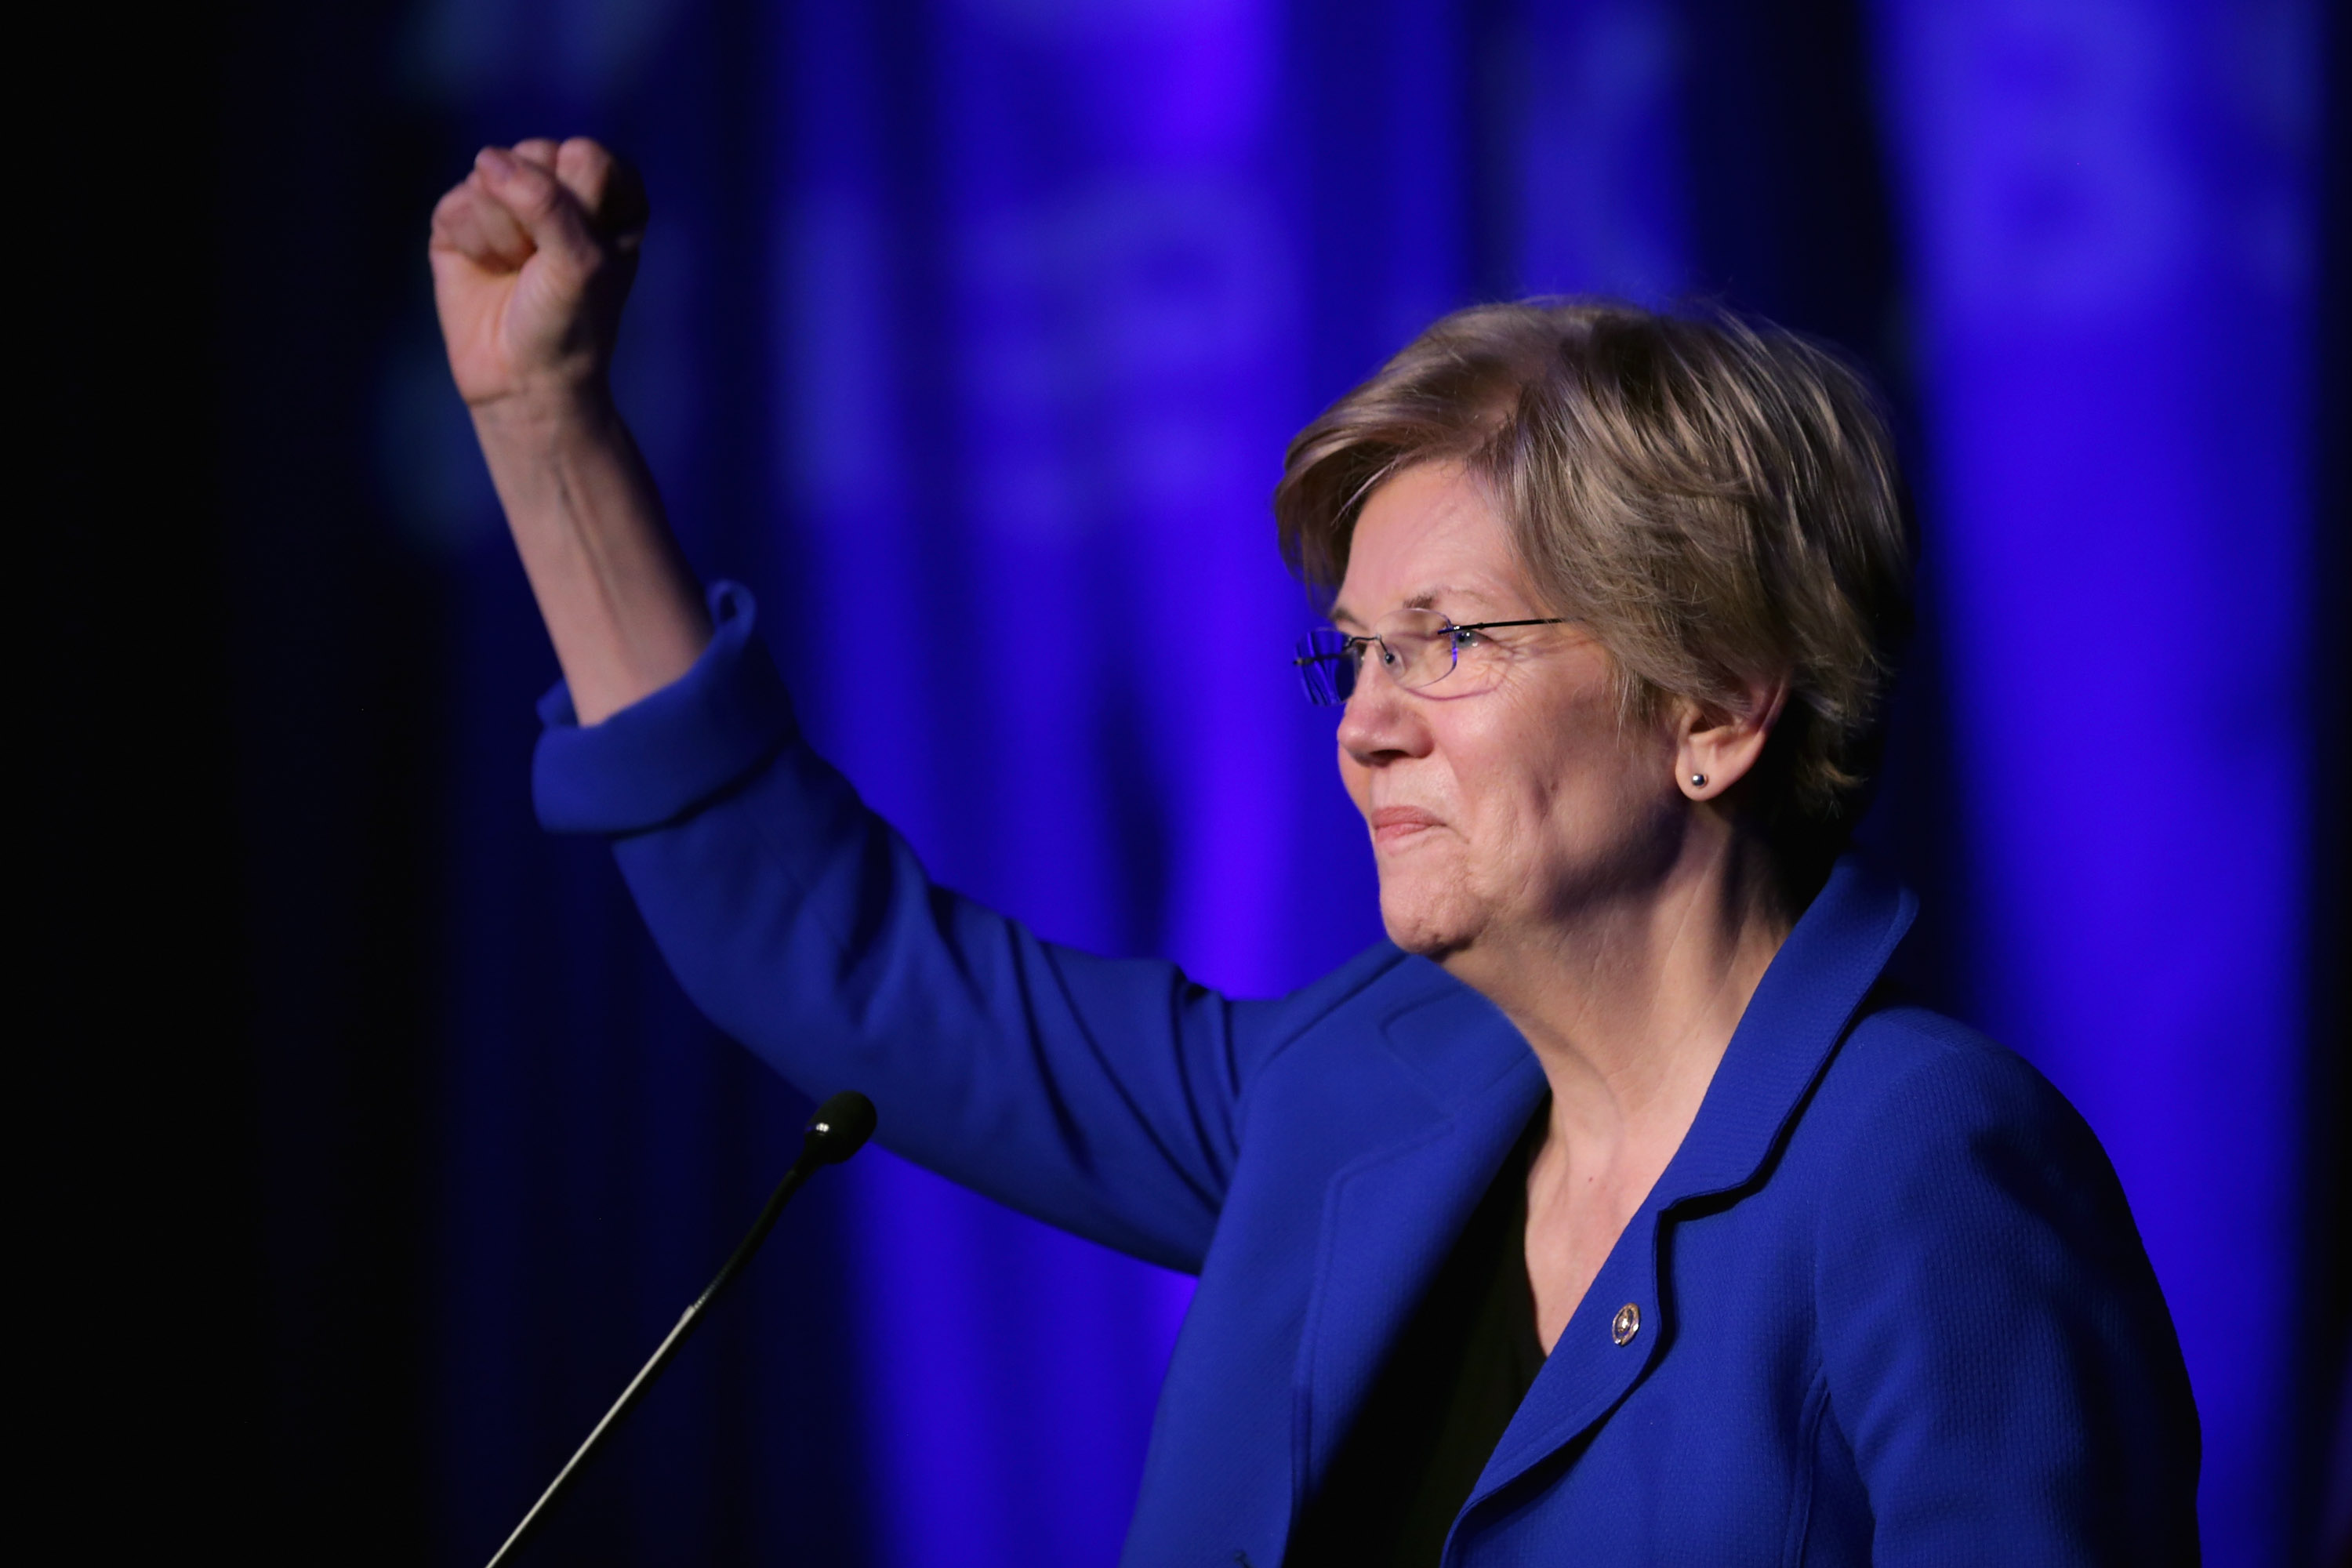 Sen. Elizabeth Warren (D-MA) delivers remarks during the Good Jobs Green Jobs National Conference on April 13, 2015 in Washington, DC.